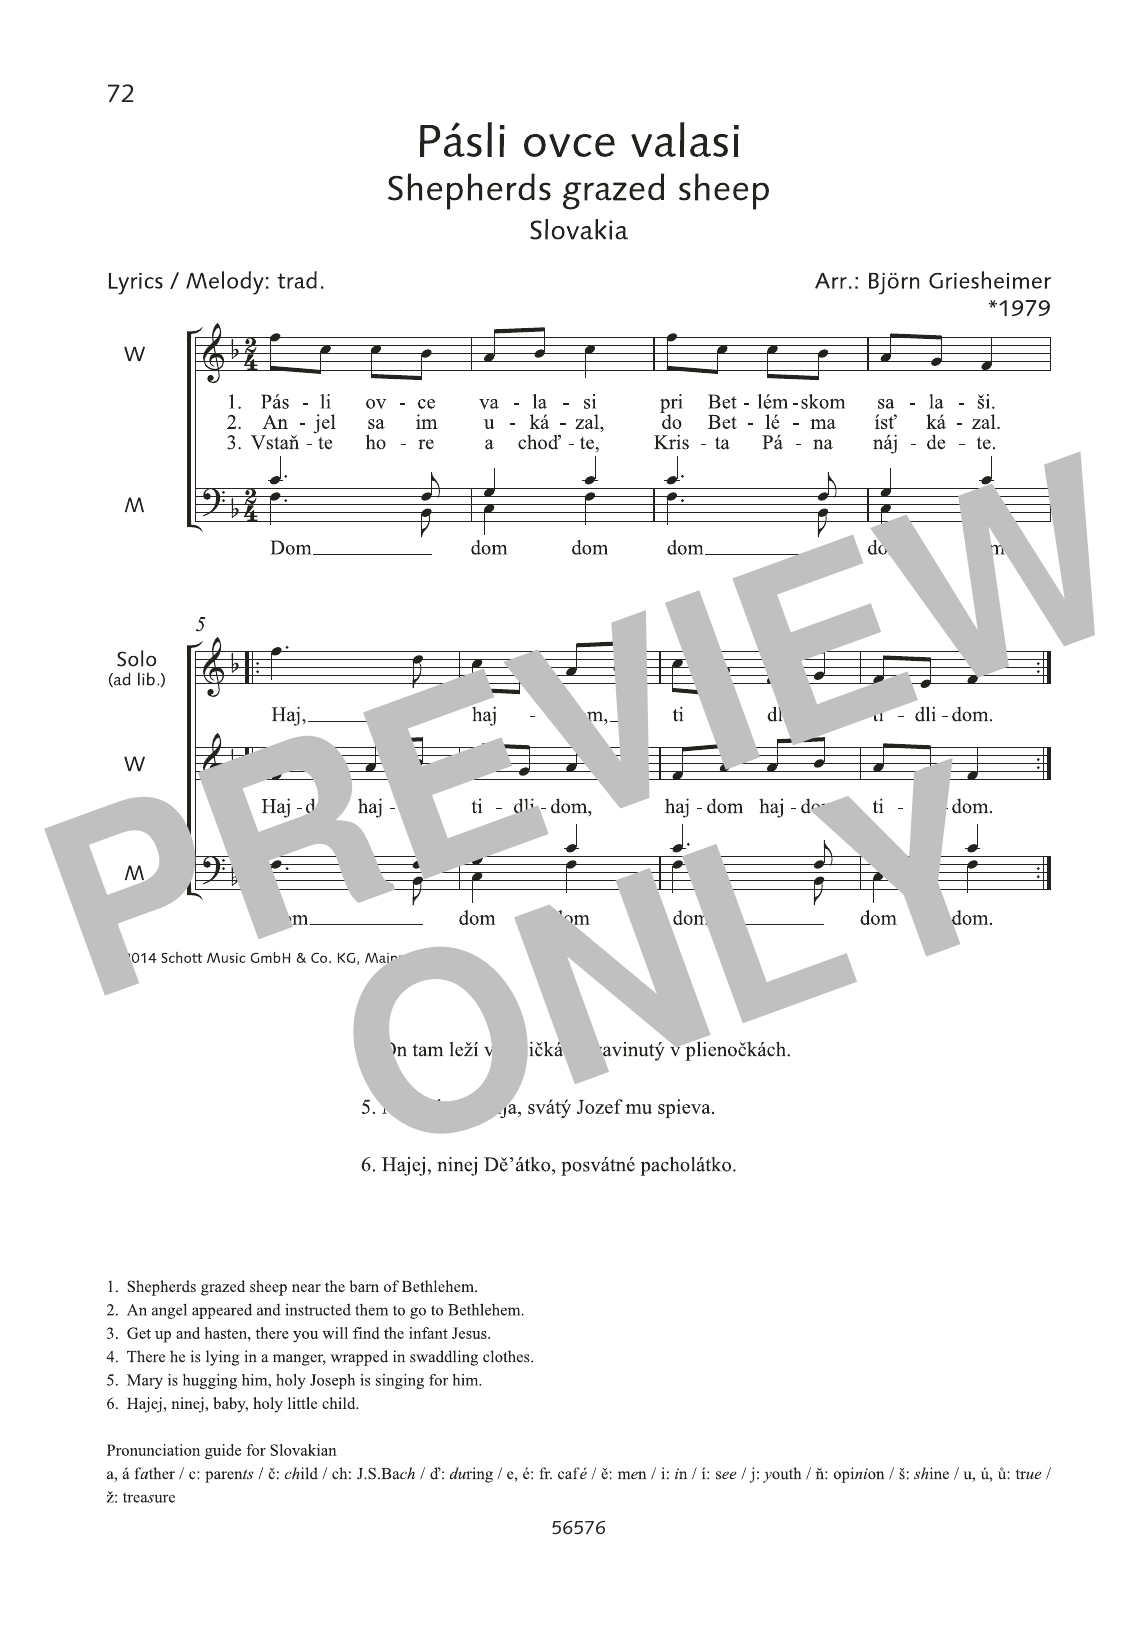 Pasli ovce valasi Sheet Music